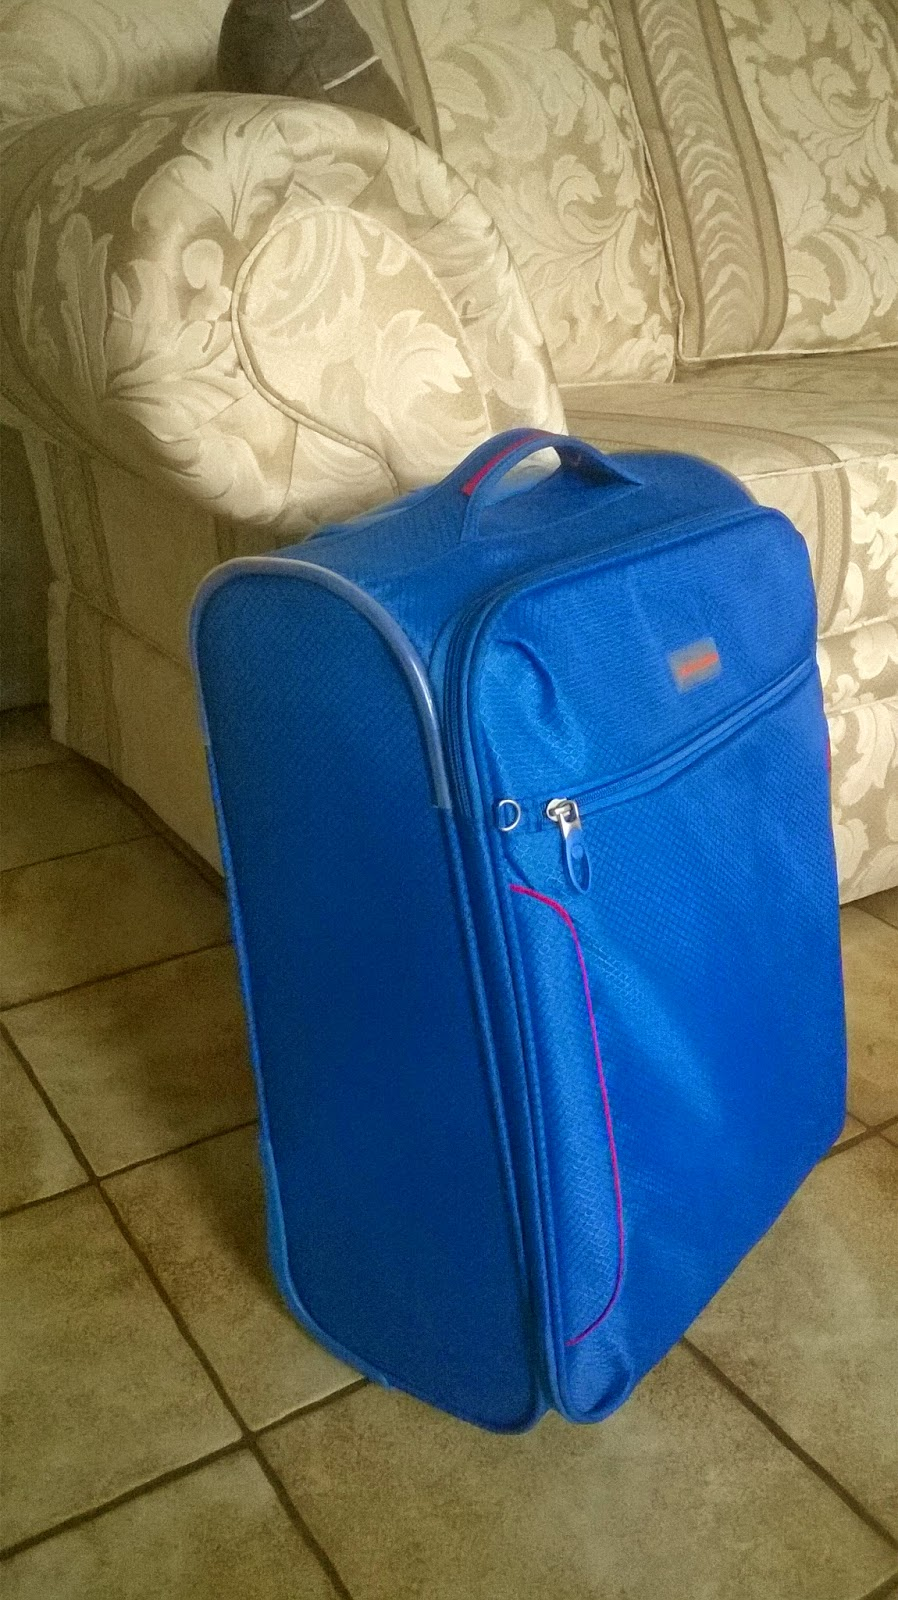 Small blue suitcase, carry-on luggage